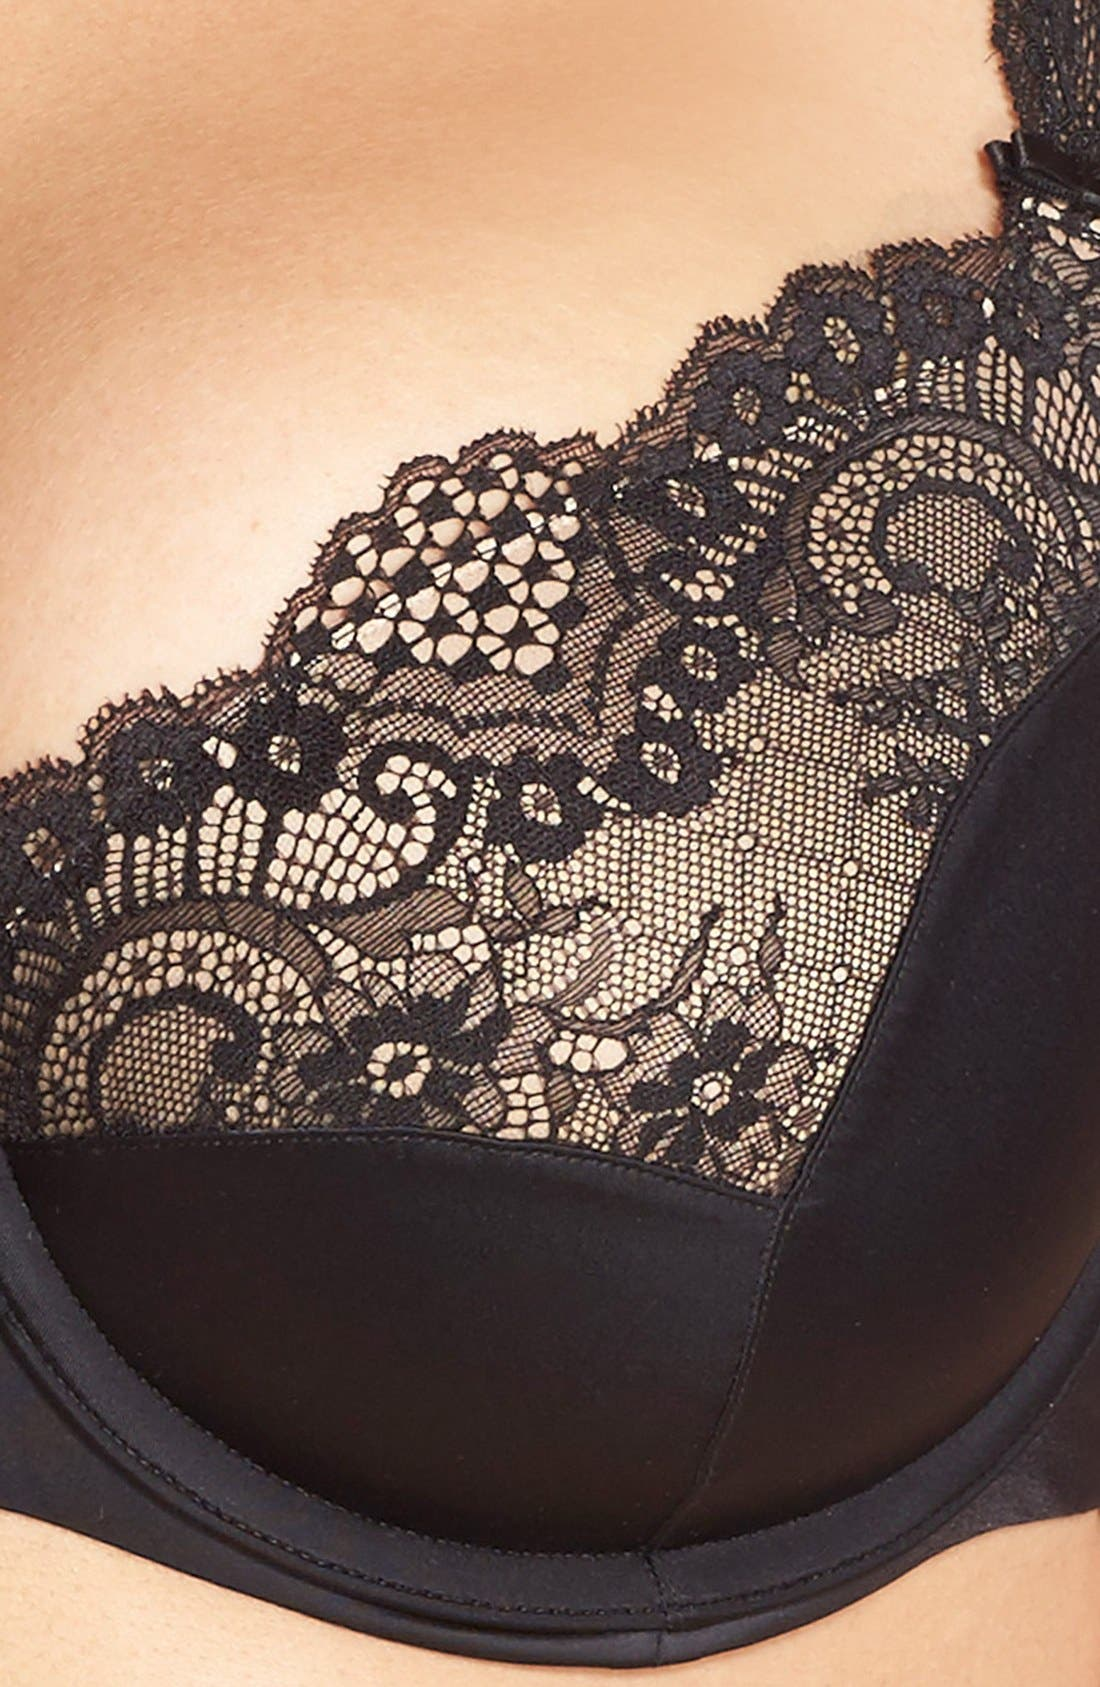 'Foxy' Lace Balconette Bra,                             Alternate thumbnail 4, color,                             BLACK